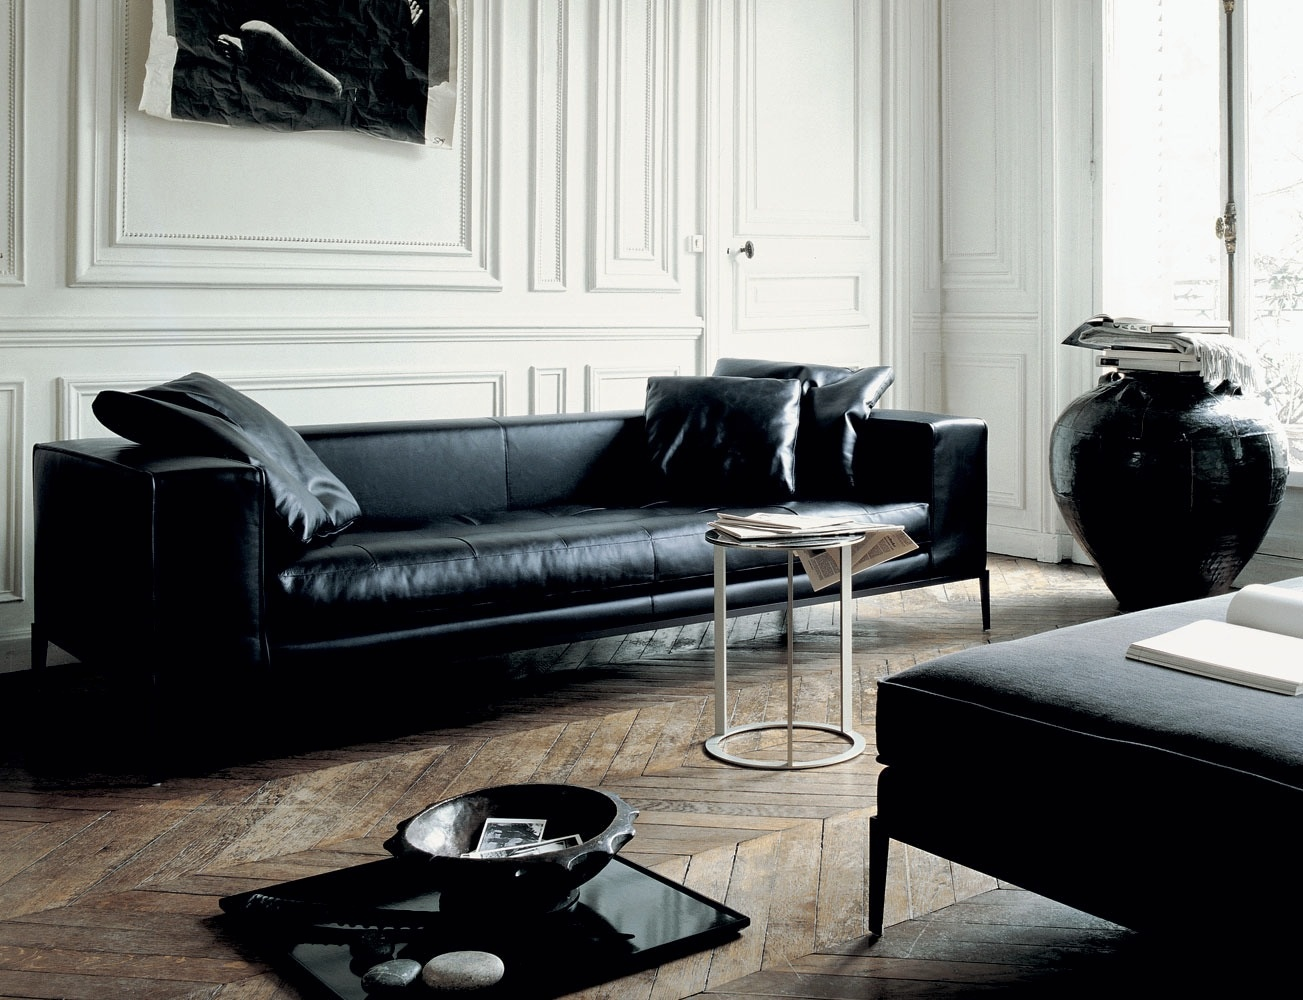 Awe Inspiring Long Black Leather Sofa Interior Design Ideas Download Free Architecture Designs Scobabritishbridgeorg